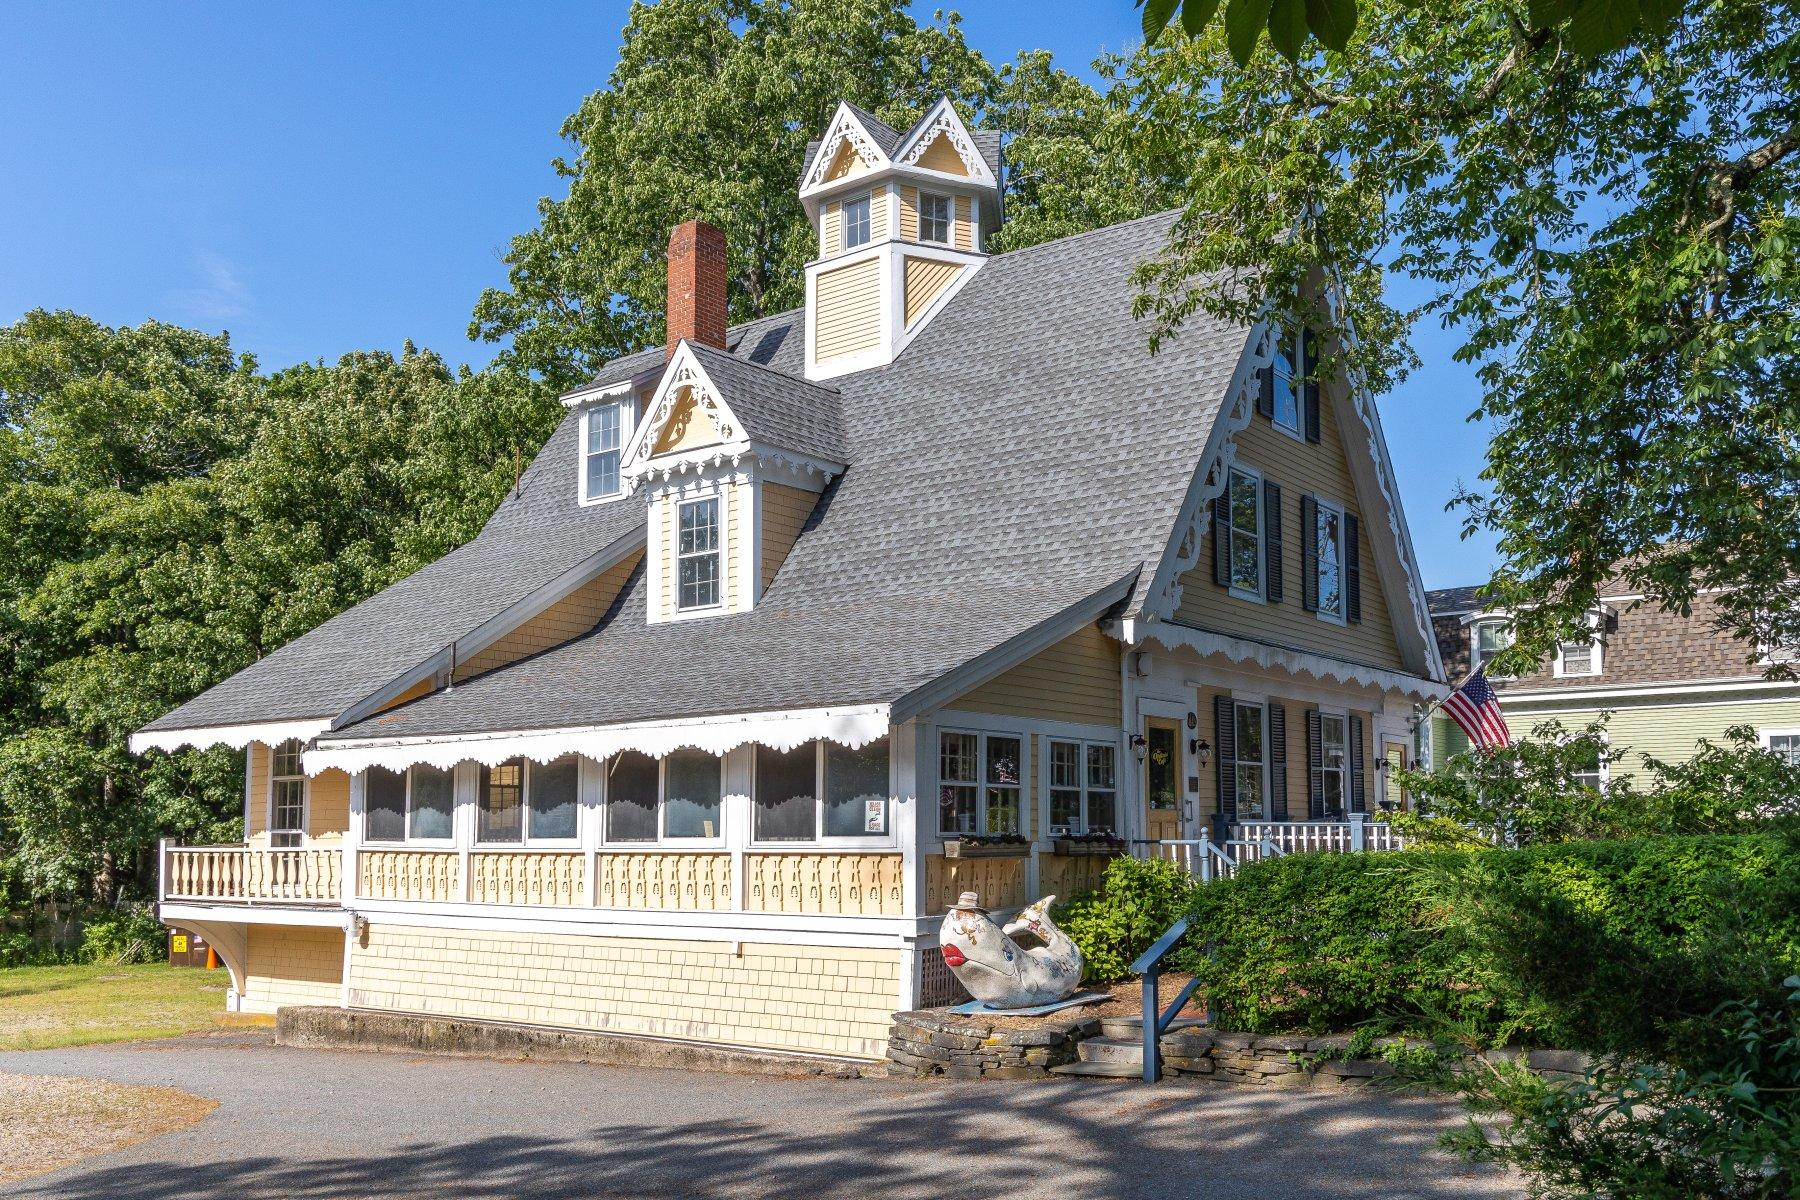 134 Route 6A Yarmouth Port MA, 02675 details